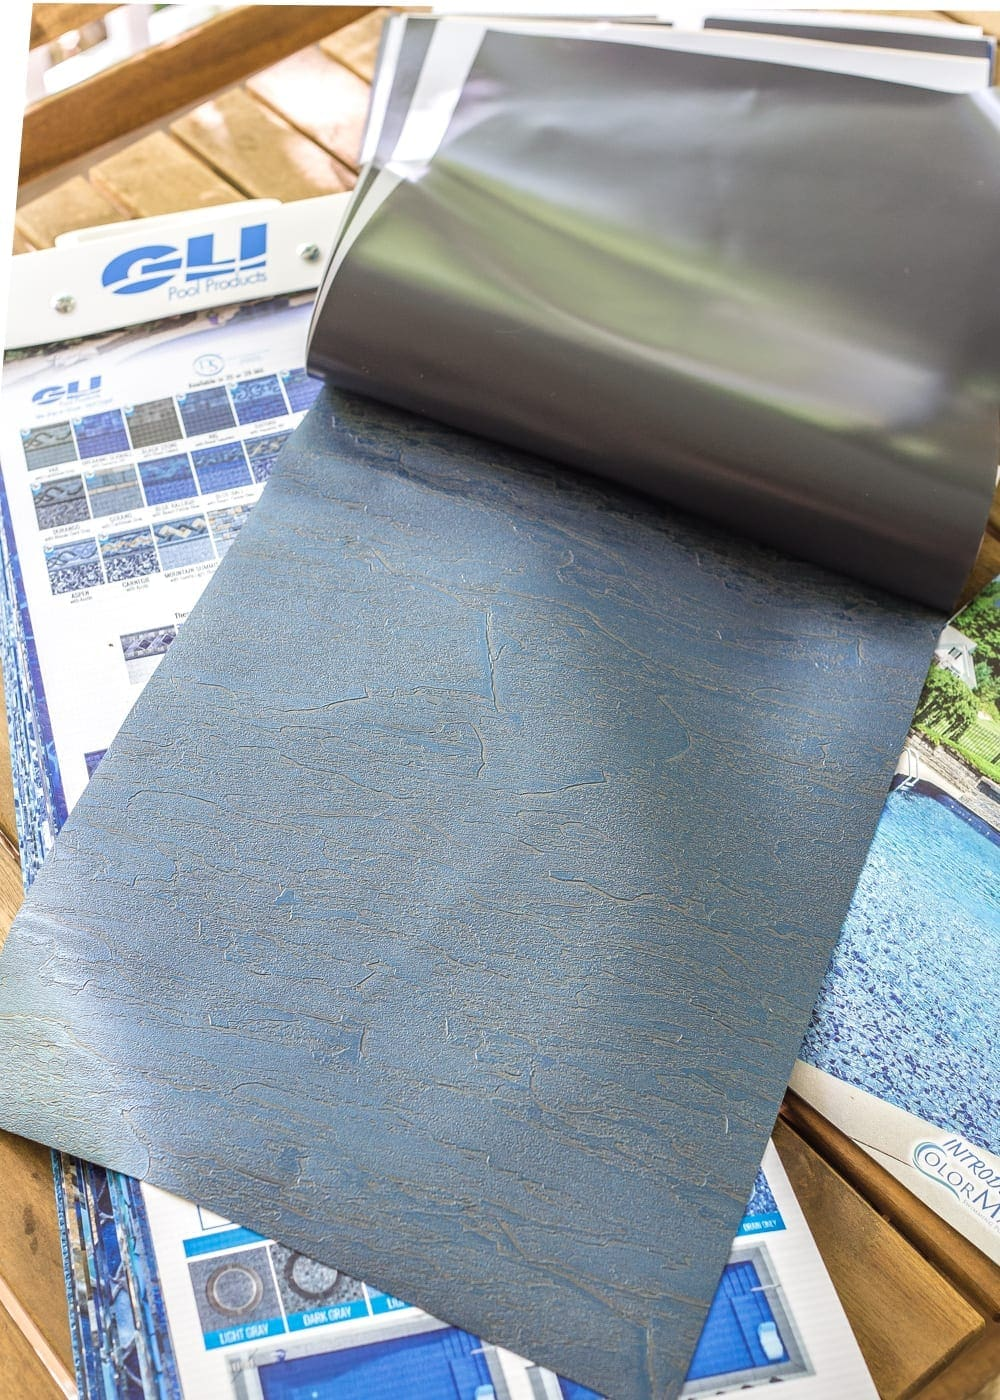 Backyard Before Tour and Pool Makeover Plans | blesserhouse.com - GLI Pool Products Blue Slate Vinyl Liner